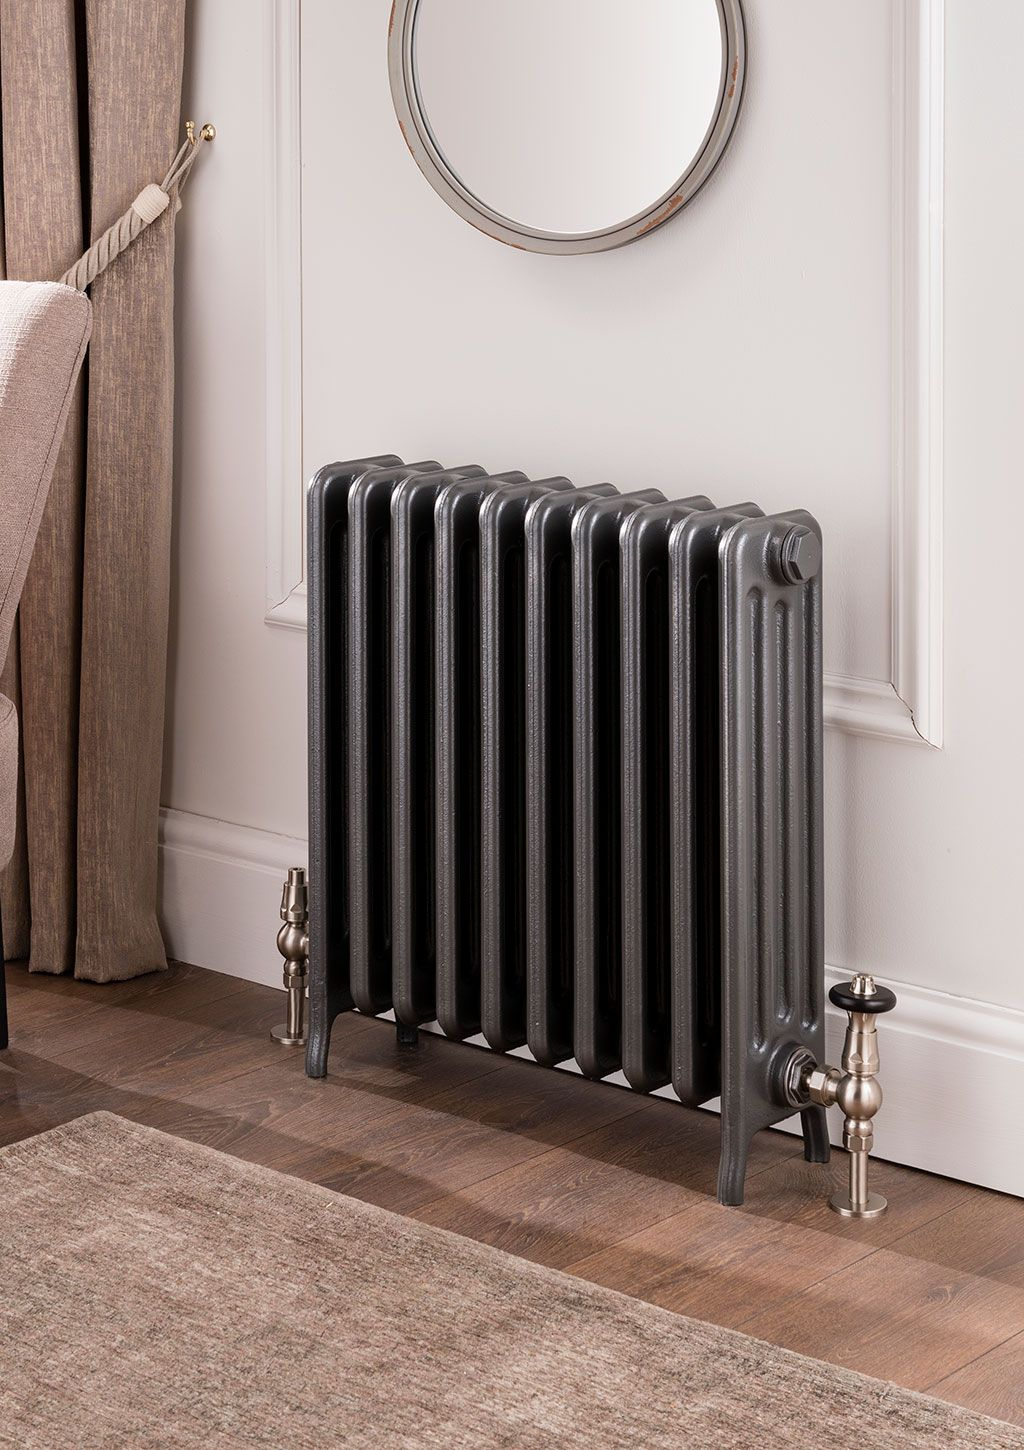 The Radiator Company Cast Iron Radiators Telford Cast Iron Radiators Victorian Radiators Radiators